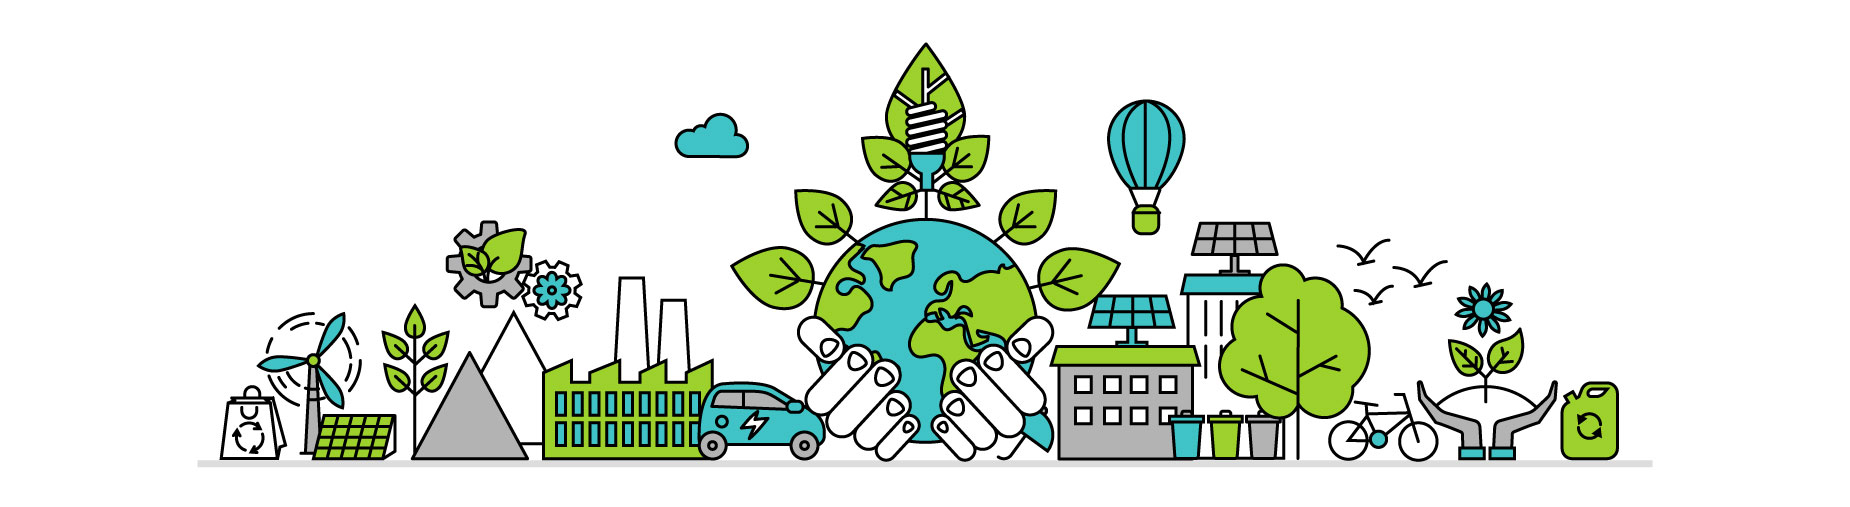 Ensuring a Sustainable Future: Industry Initiatives - CII Blog